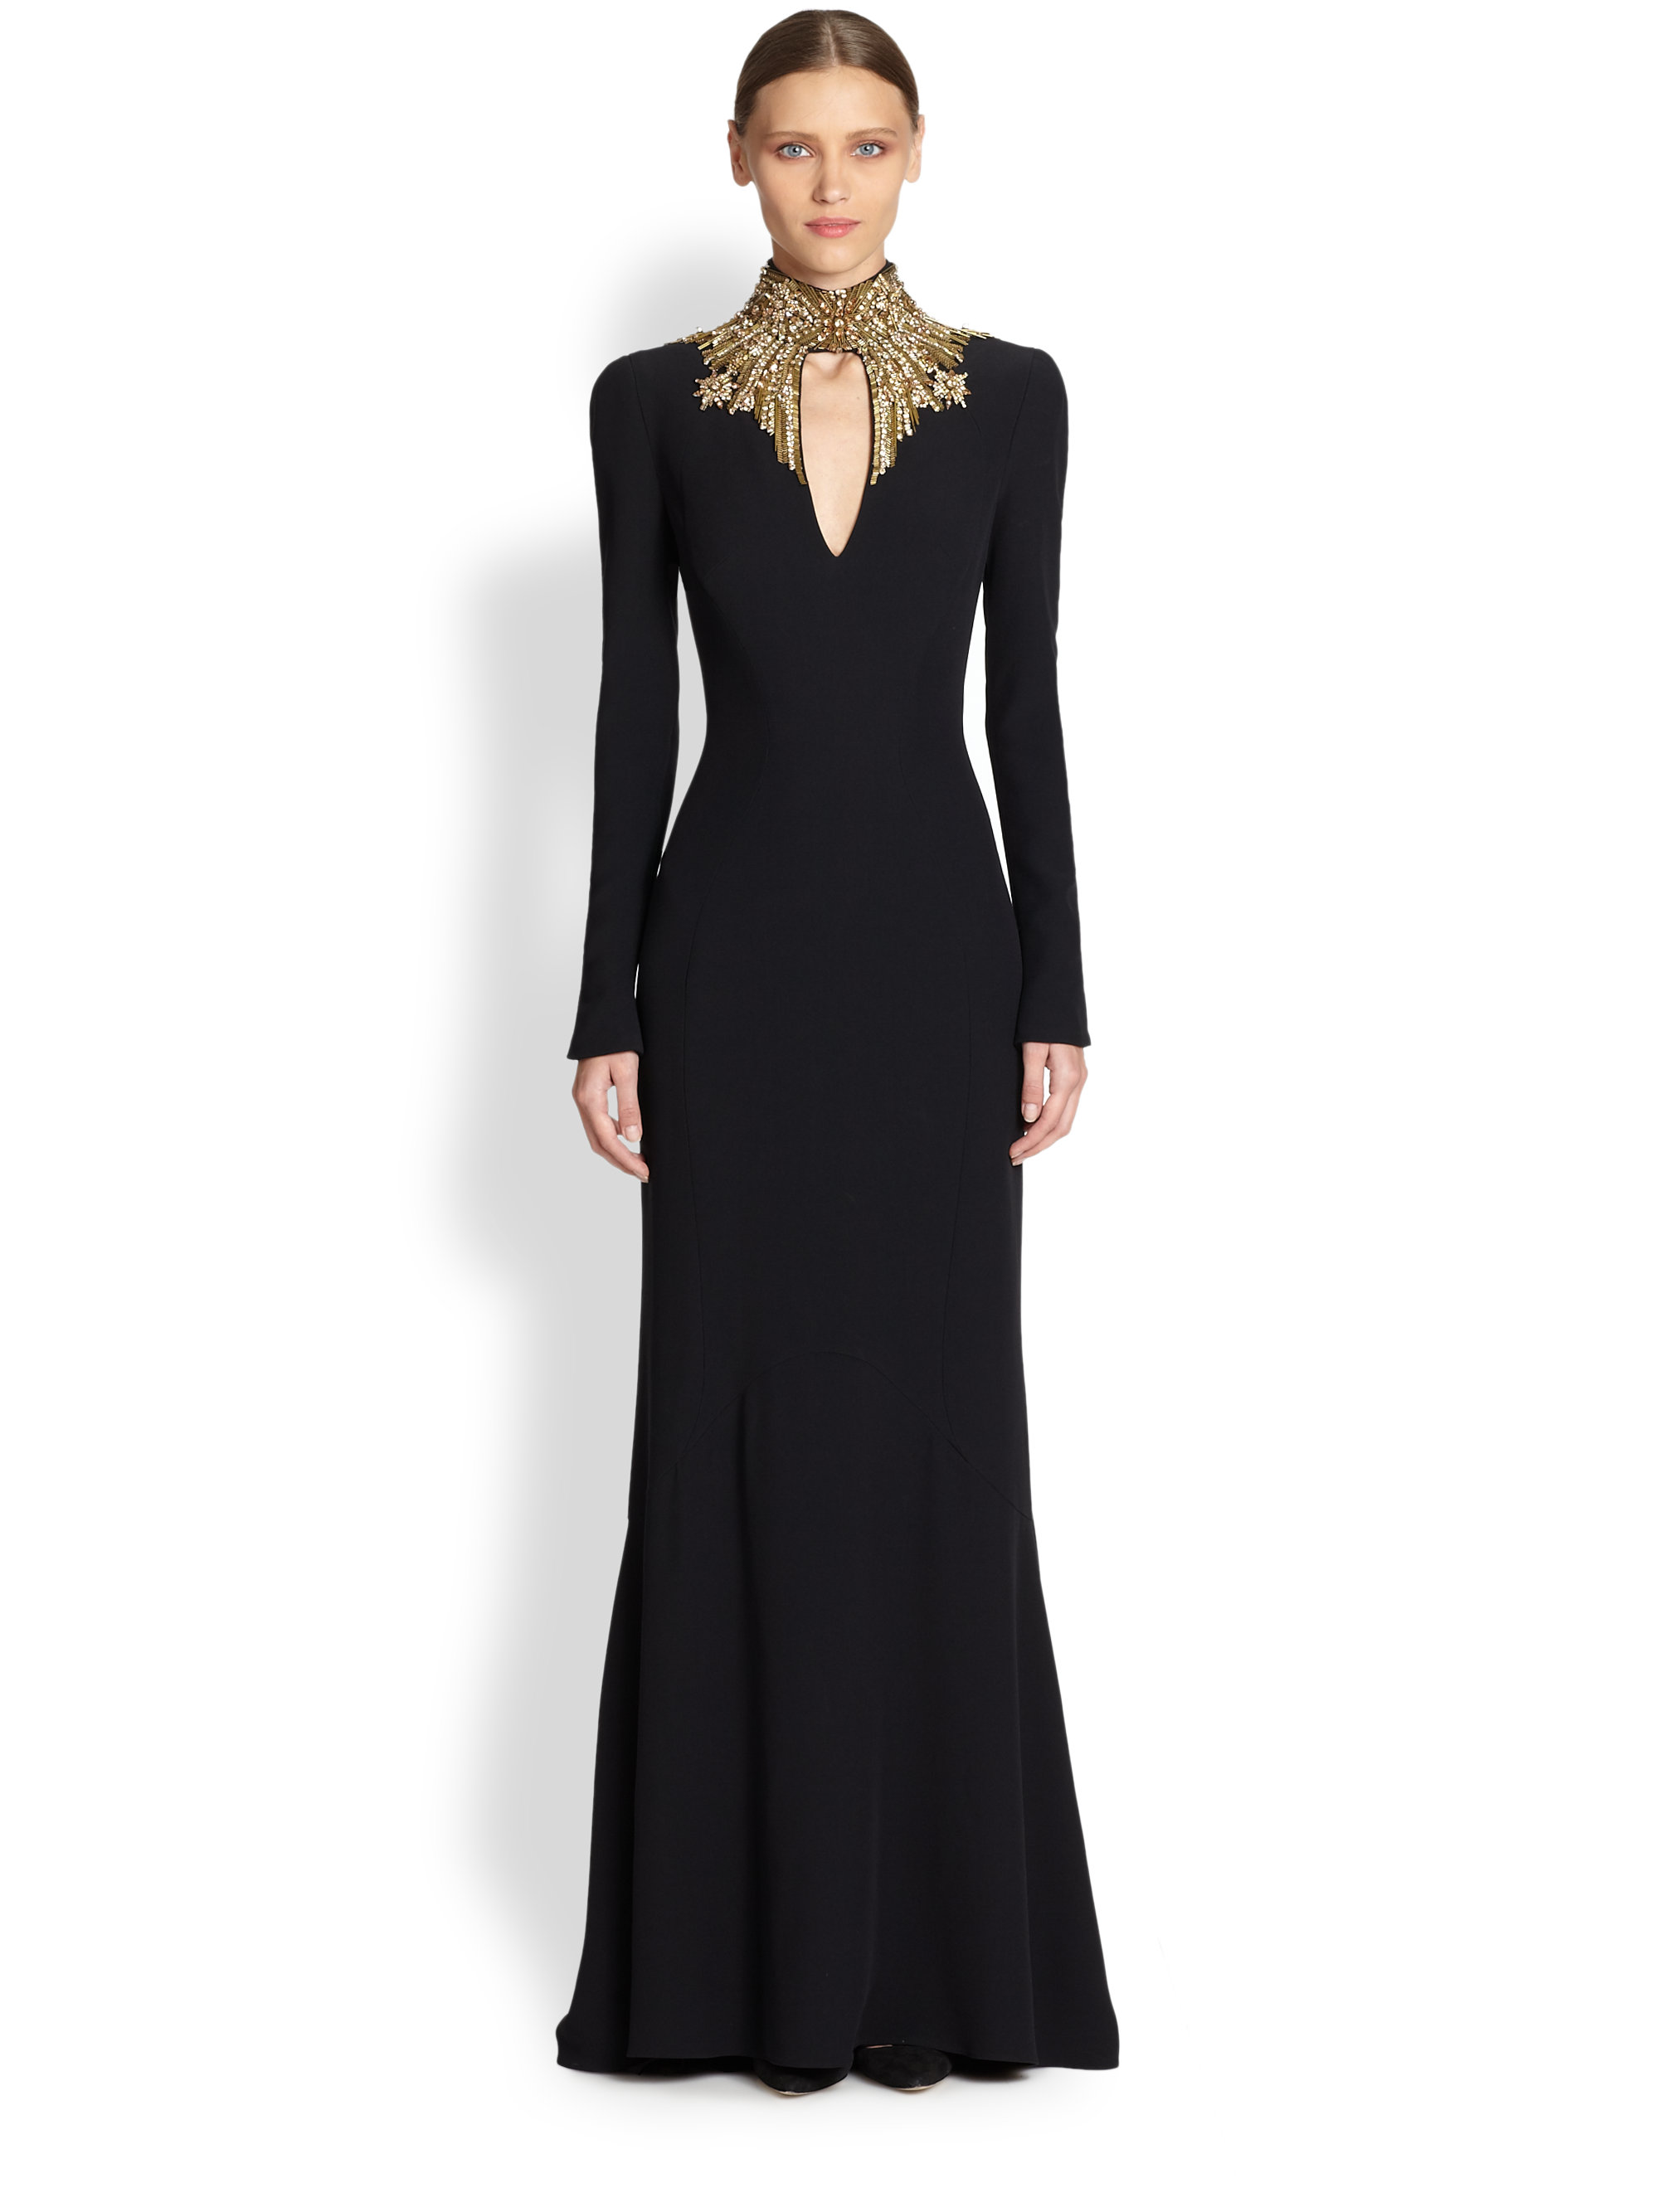 Alexander mcqueen Crepe Jewelneck Gown in Black